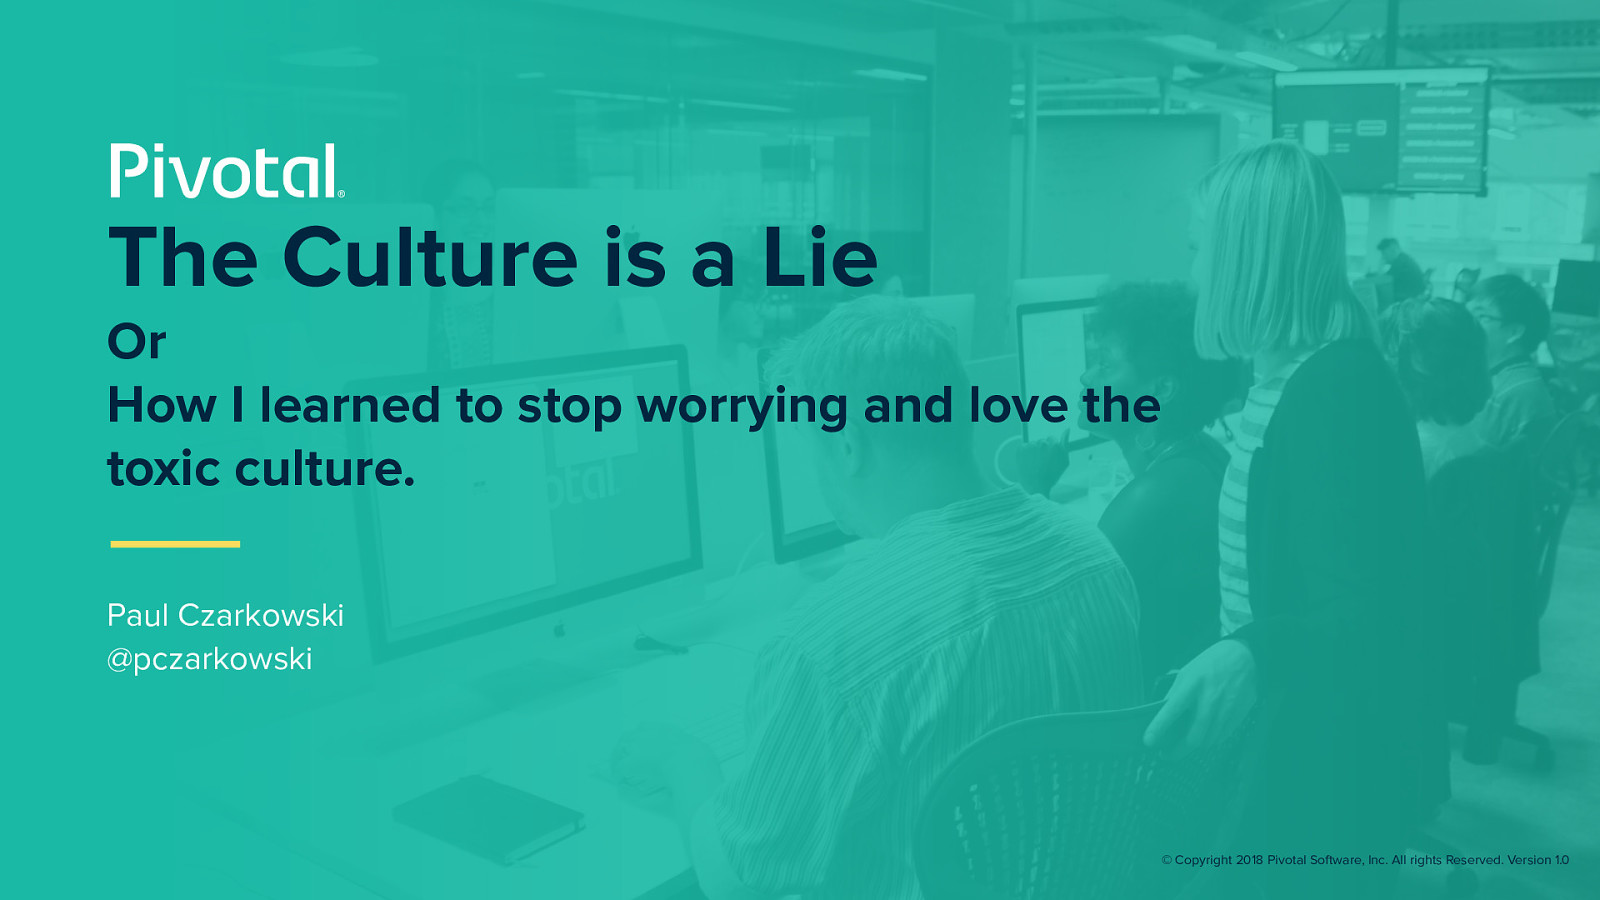 DevOps - The Culture is a Lie